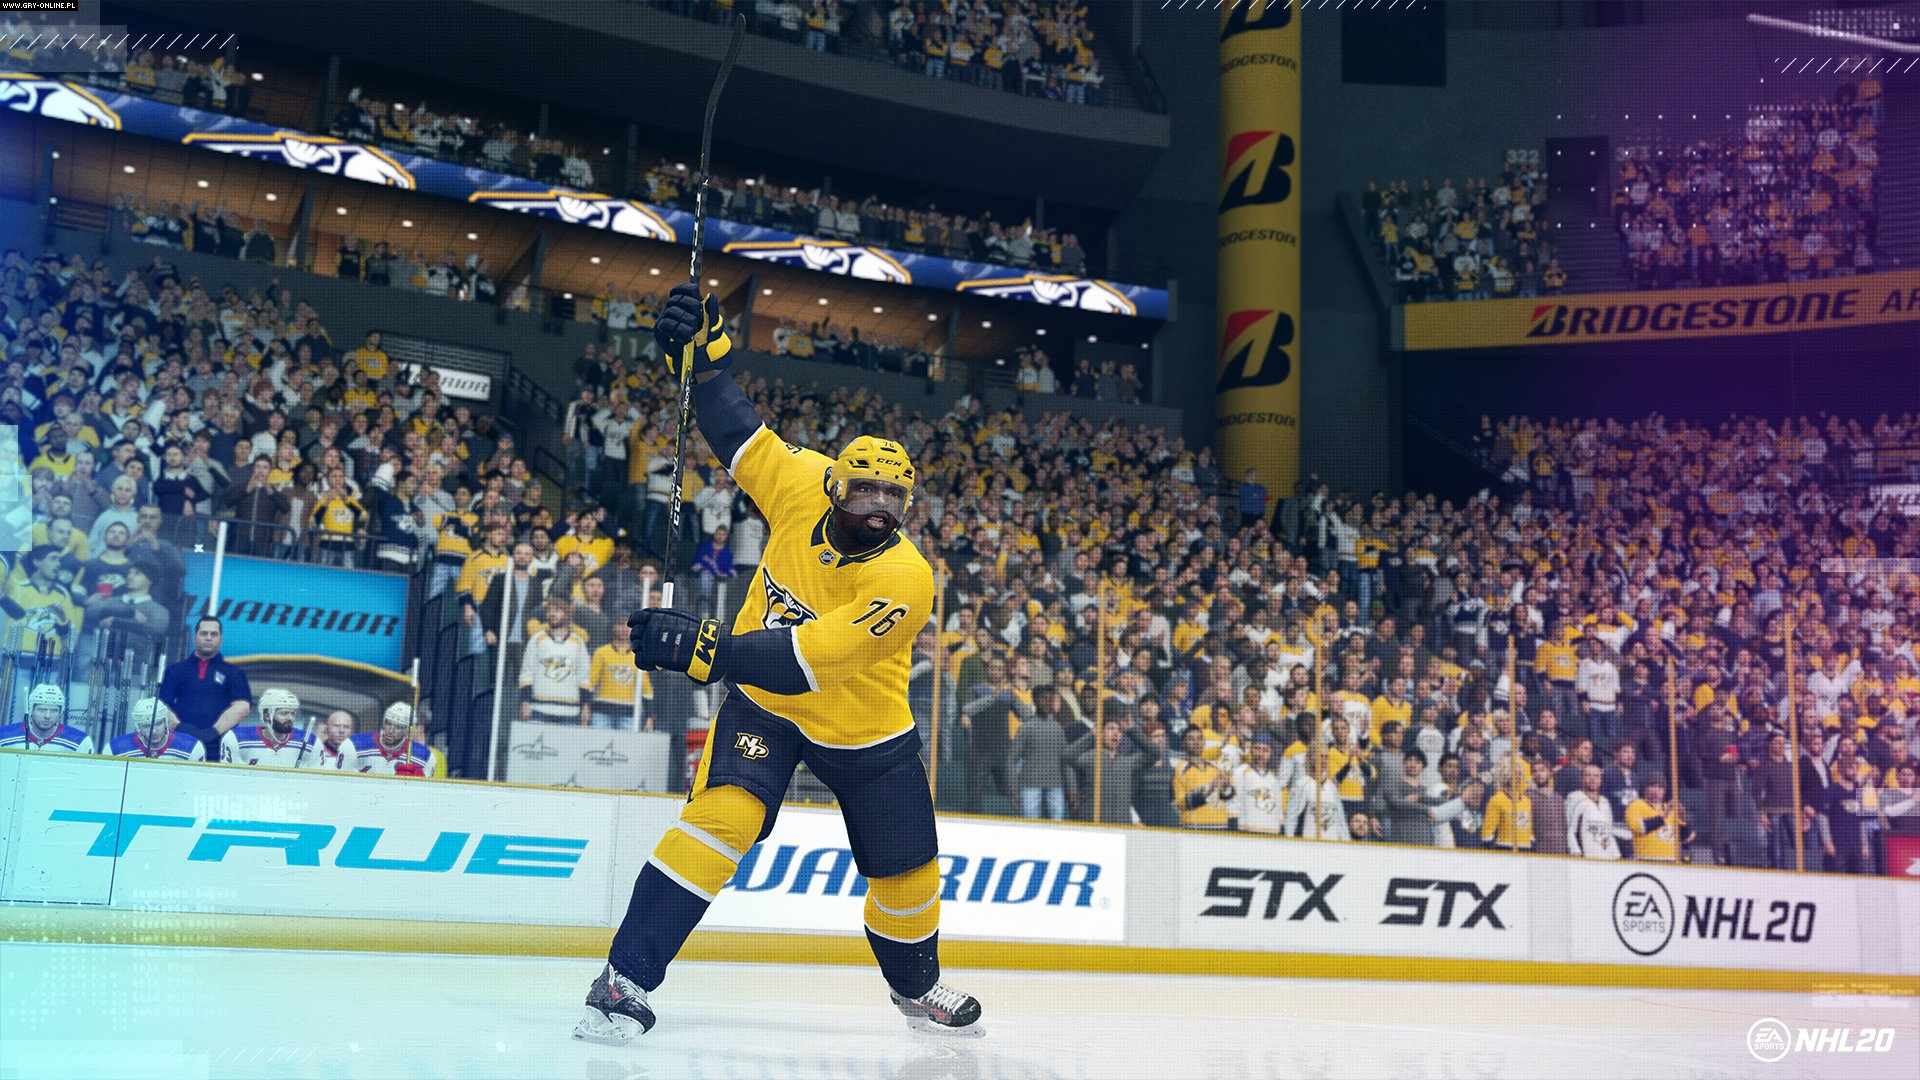 NHL 20 PS4, XONE Games Image 10/14, EA Sports, Electronic Arts Inc.